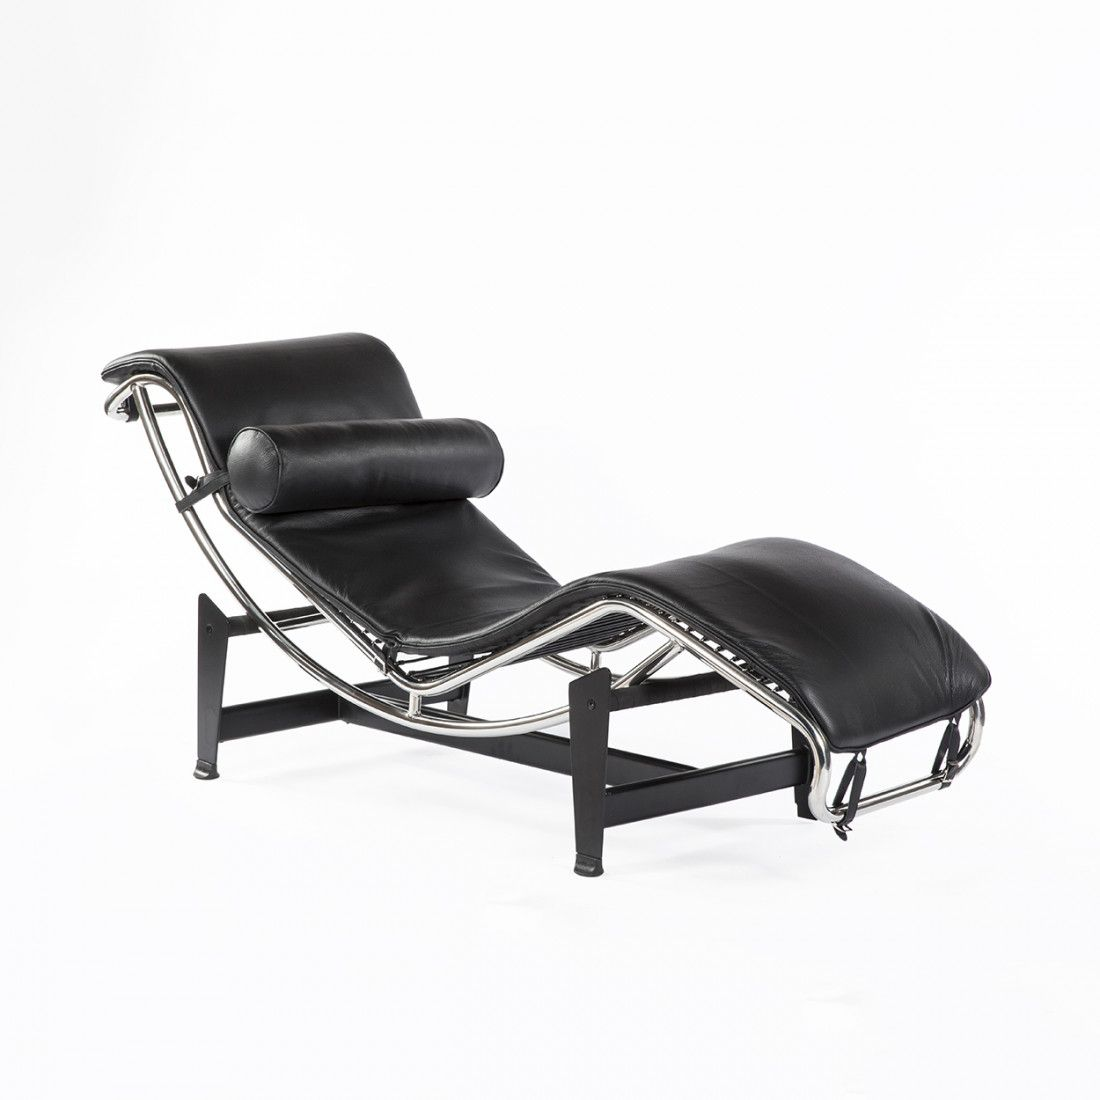 Mid Century Modern Reproduction Lc4 Chaise Lounge Black Leather